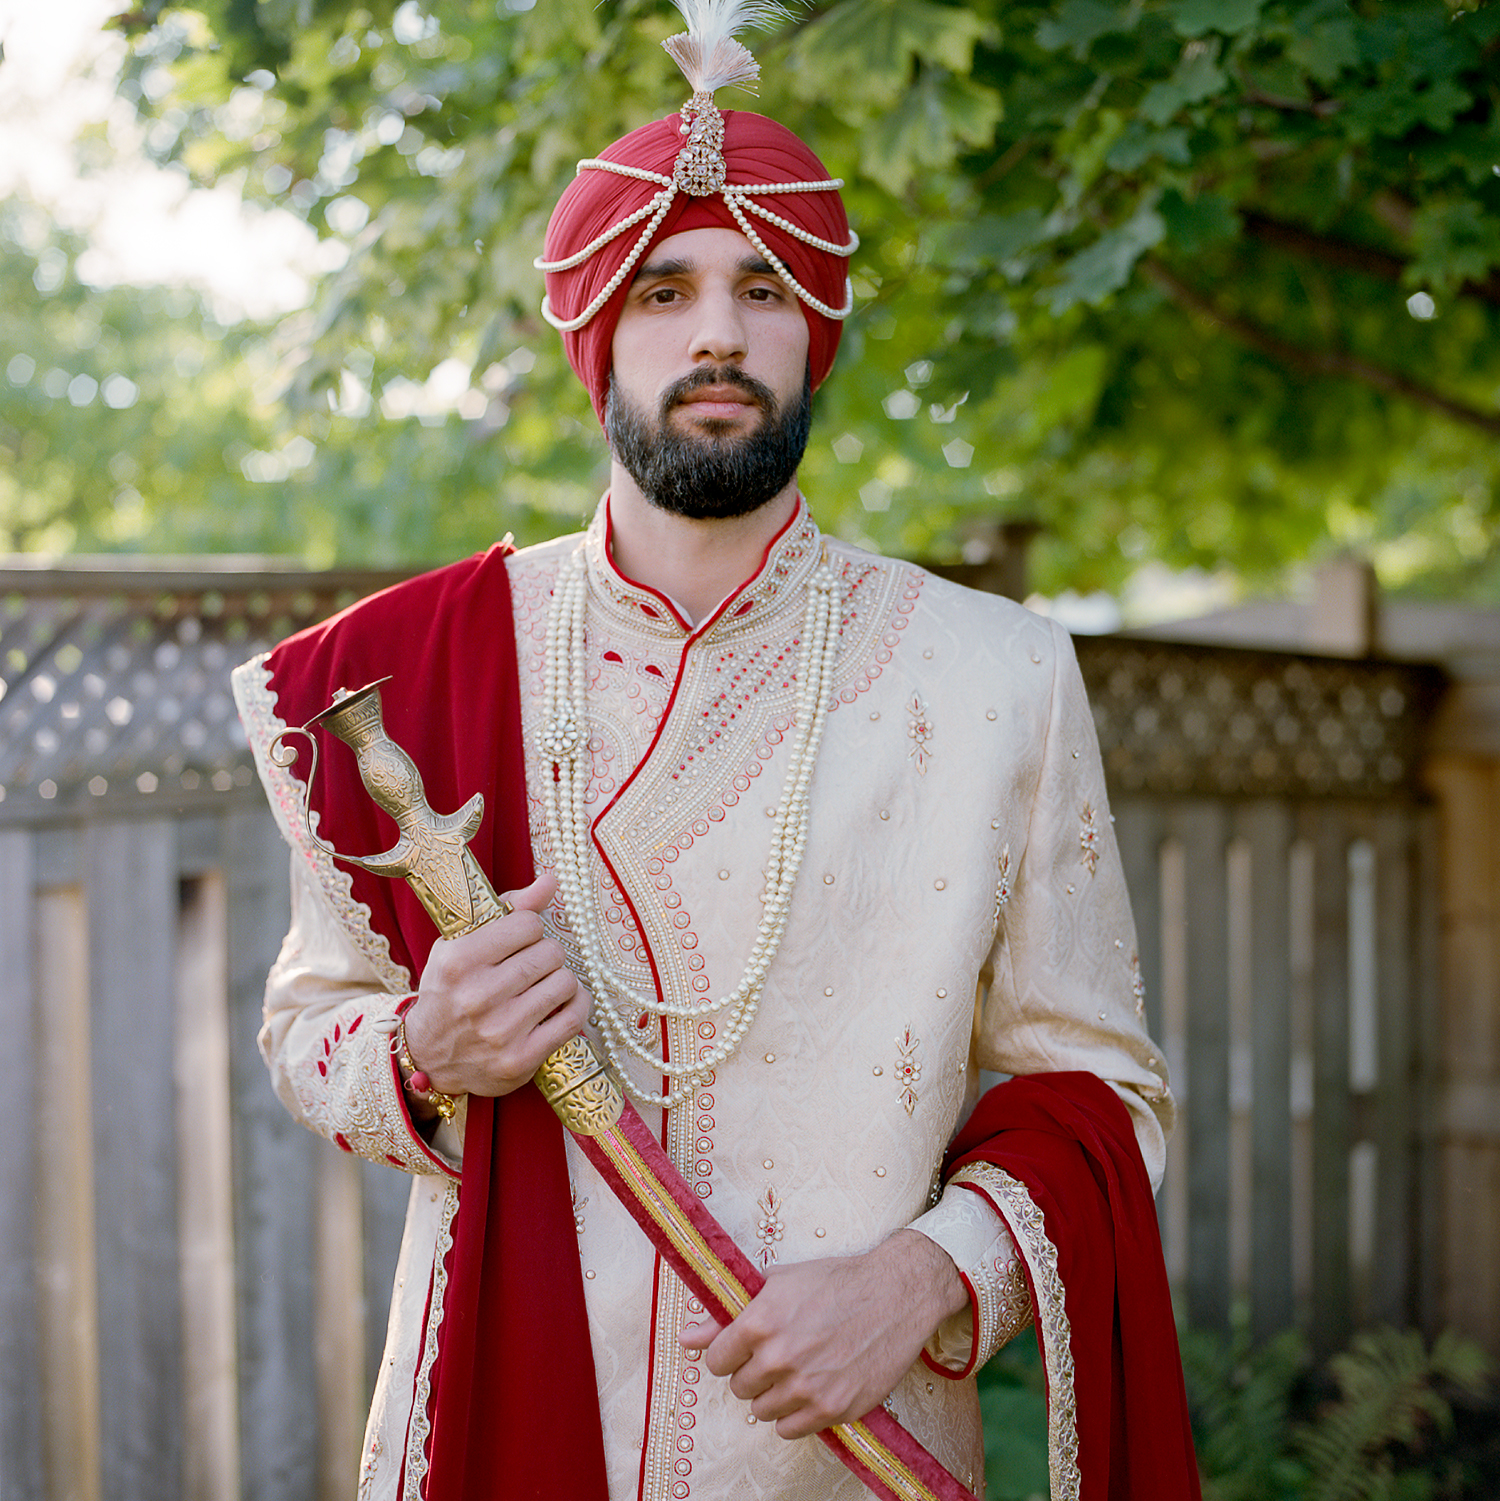 Best-Film-Wedding-Photographer-Toronto-3B-Photography-Brjann-Batista-Bettencourt-Edotiral-documentary-wedding-photography-candid-portrait-Medium-Format-Film-Kodak-Portra-800-Minimal-Portrait-of-Groom-in-traditional-groom-garments.jpg